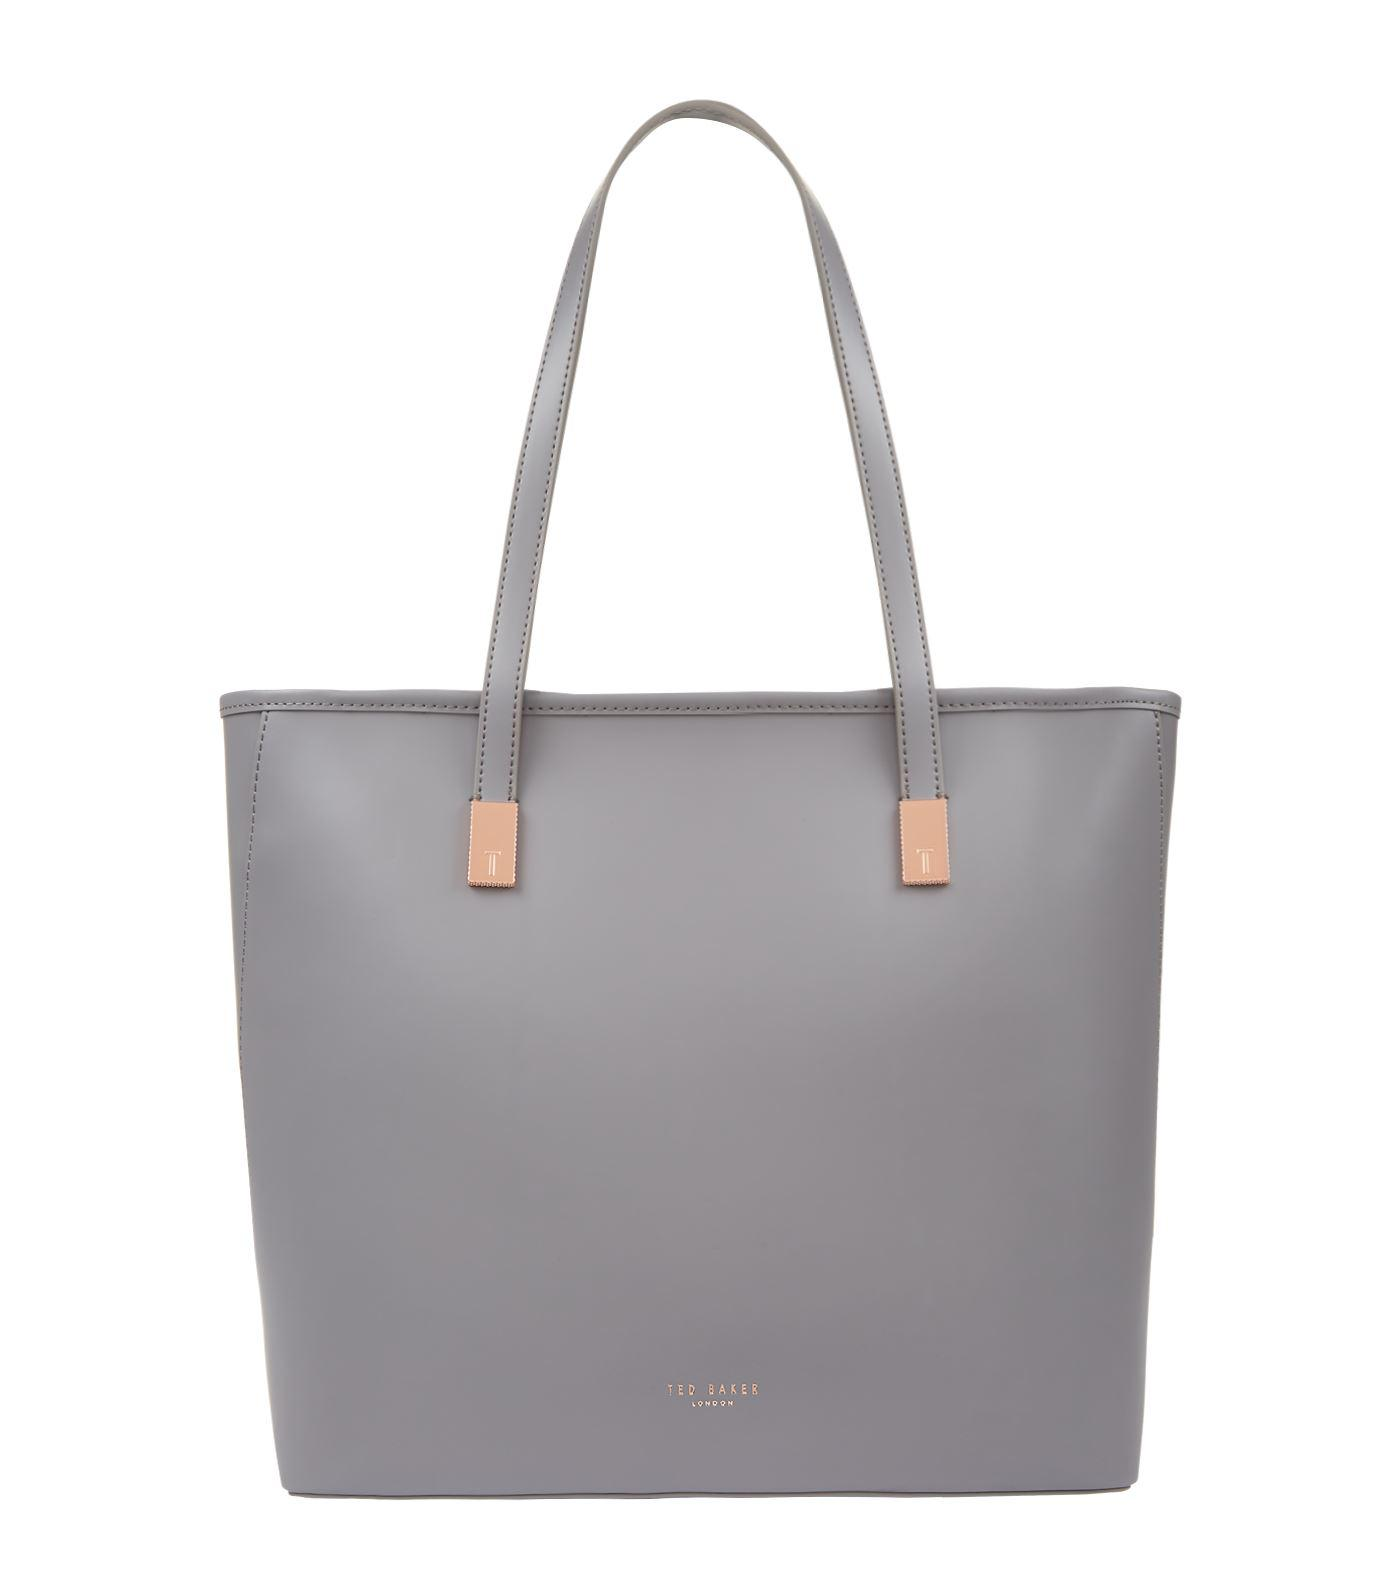 1f3511414eeb34 Ted Baker Chelsey Leather Shopper Bag in Gray - Lyst